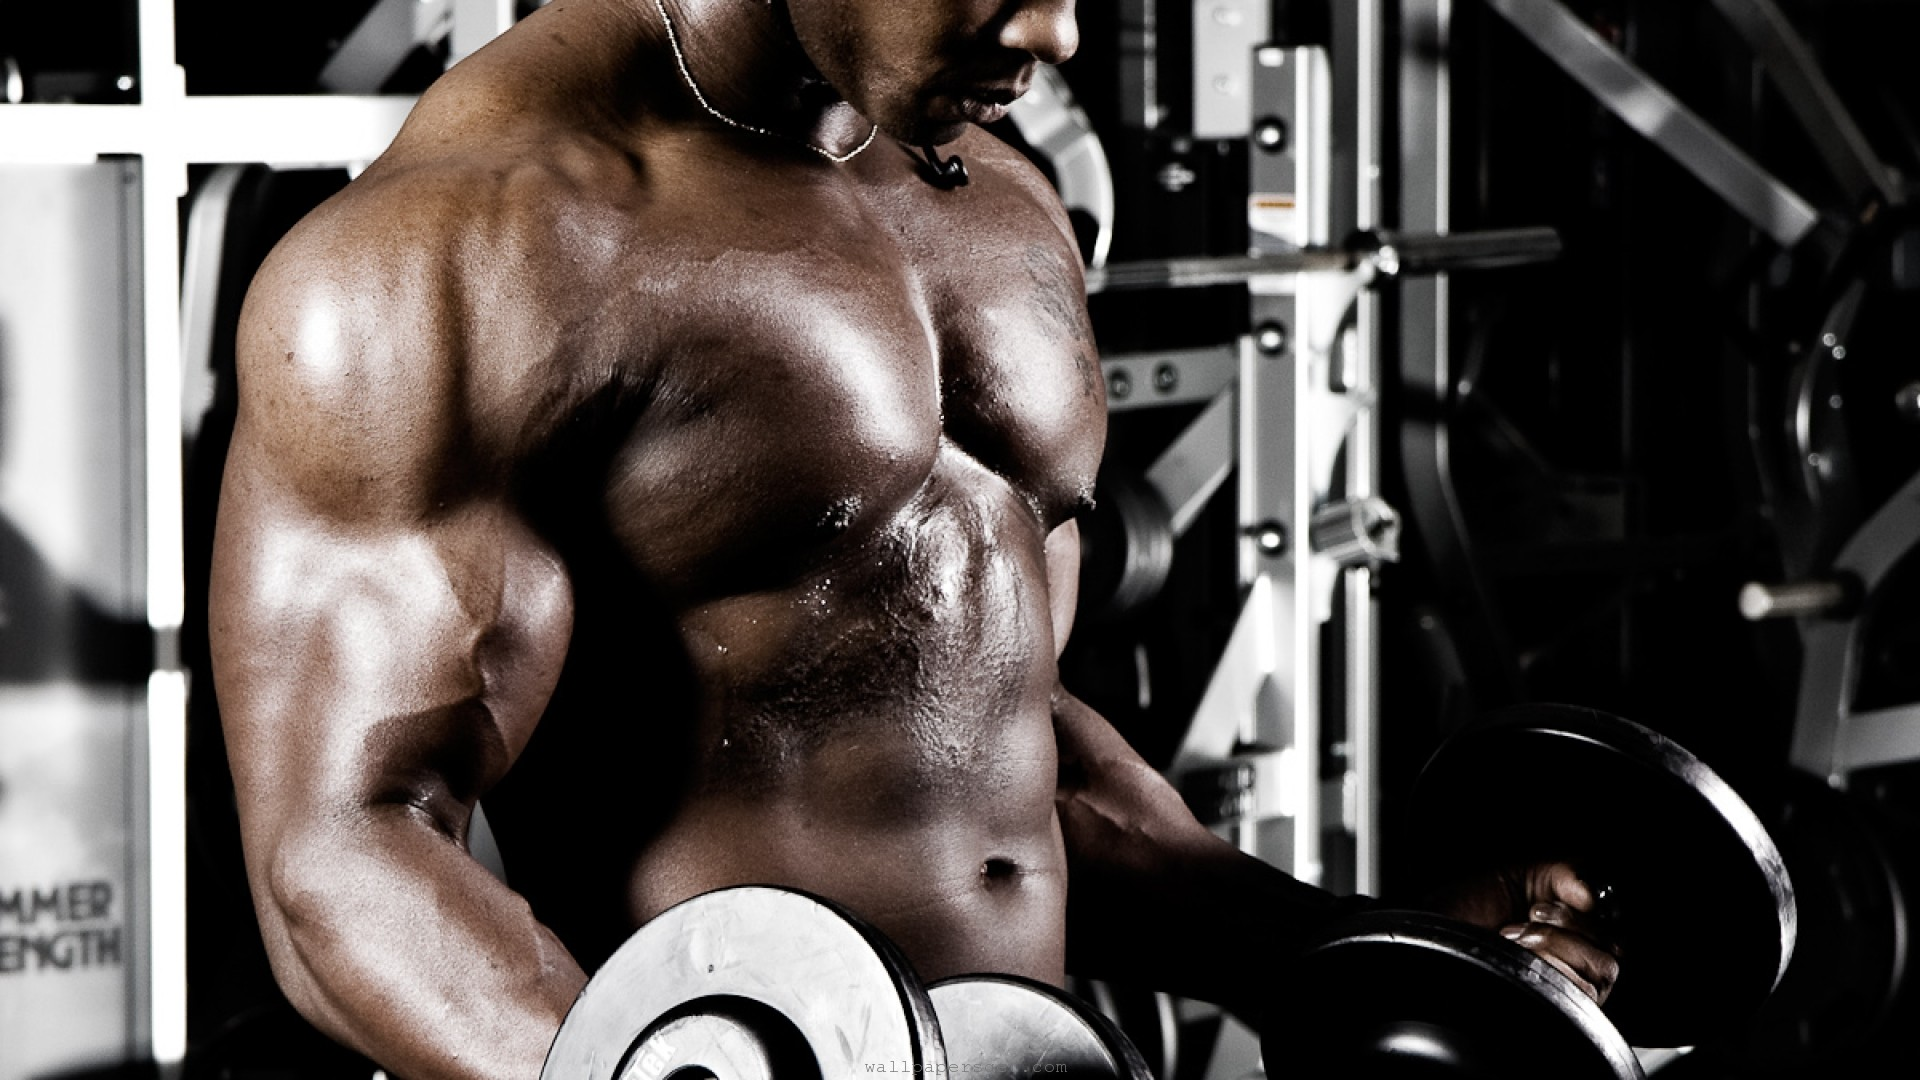 Gym Wallpapers Download